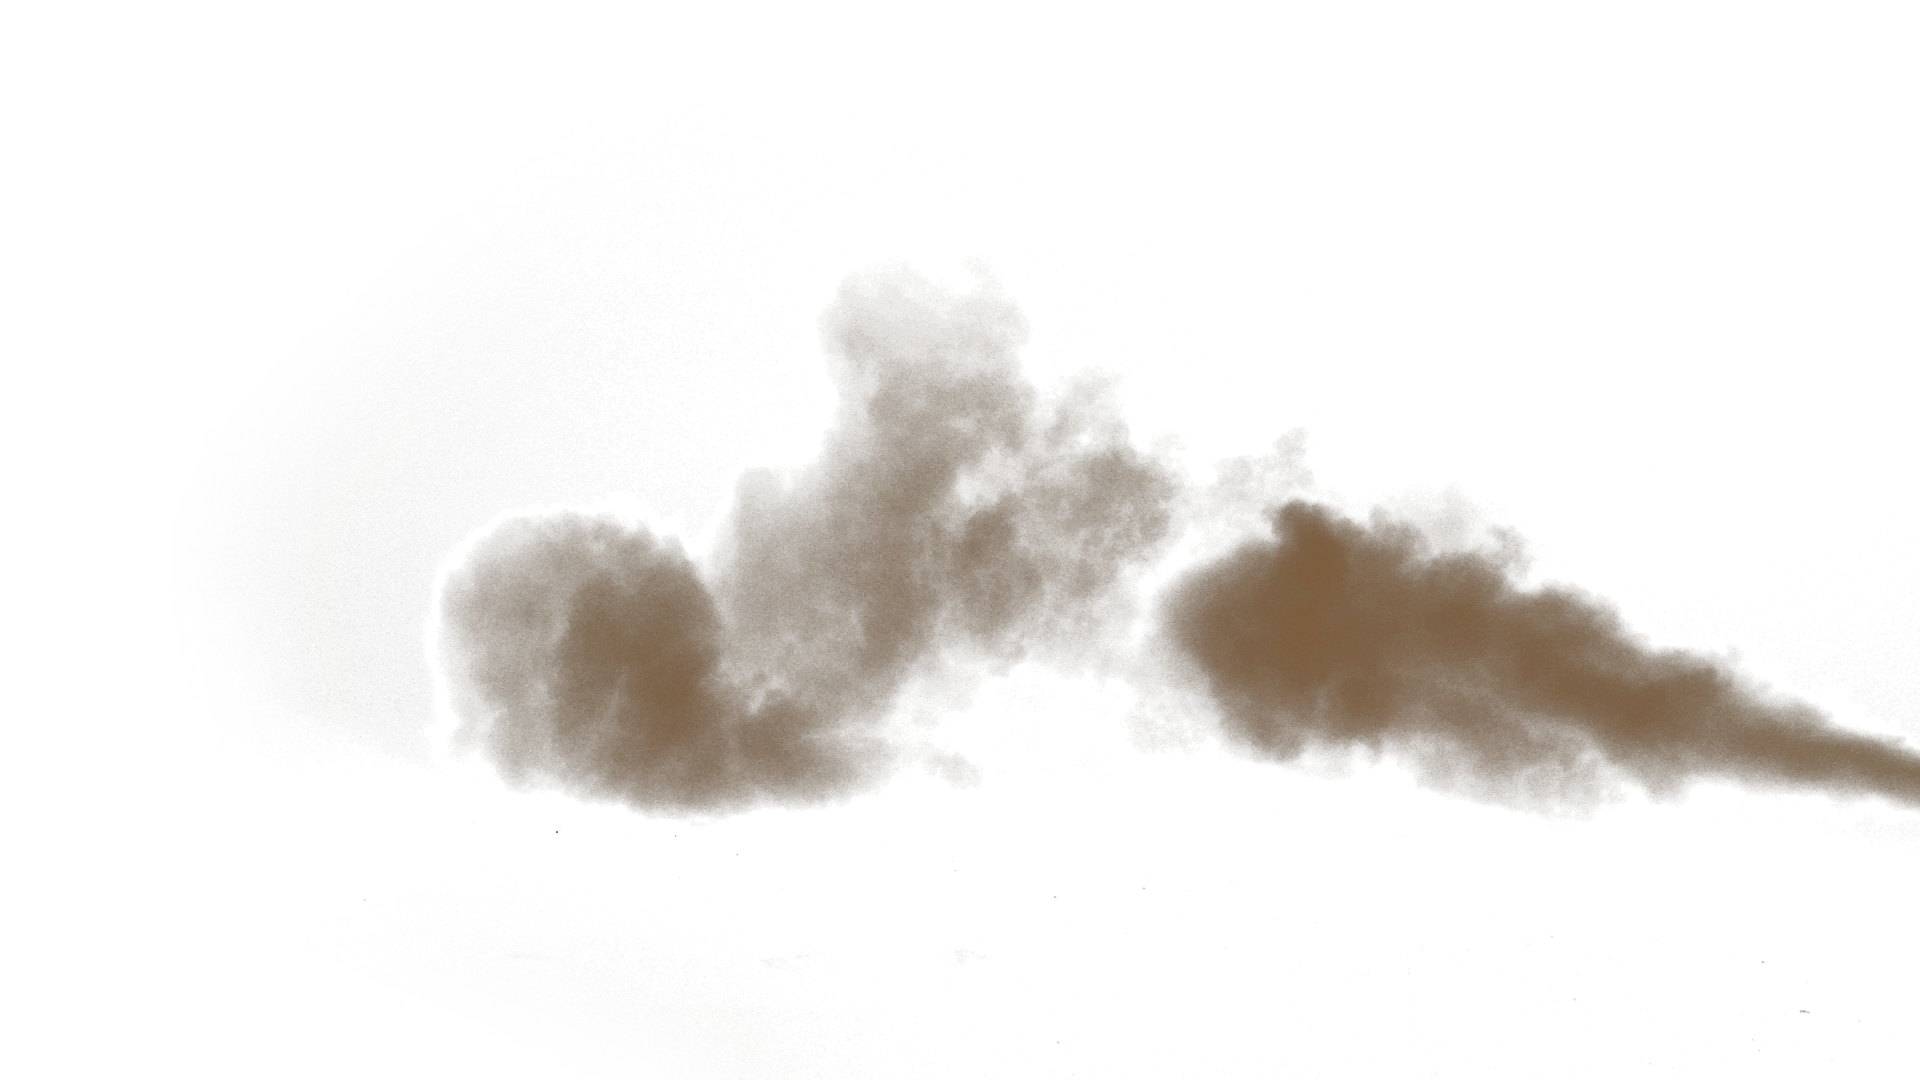 Png smoke effect. Transparent images all